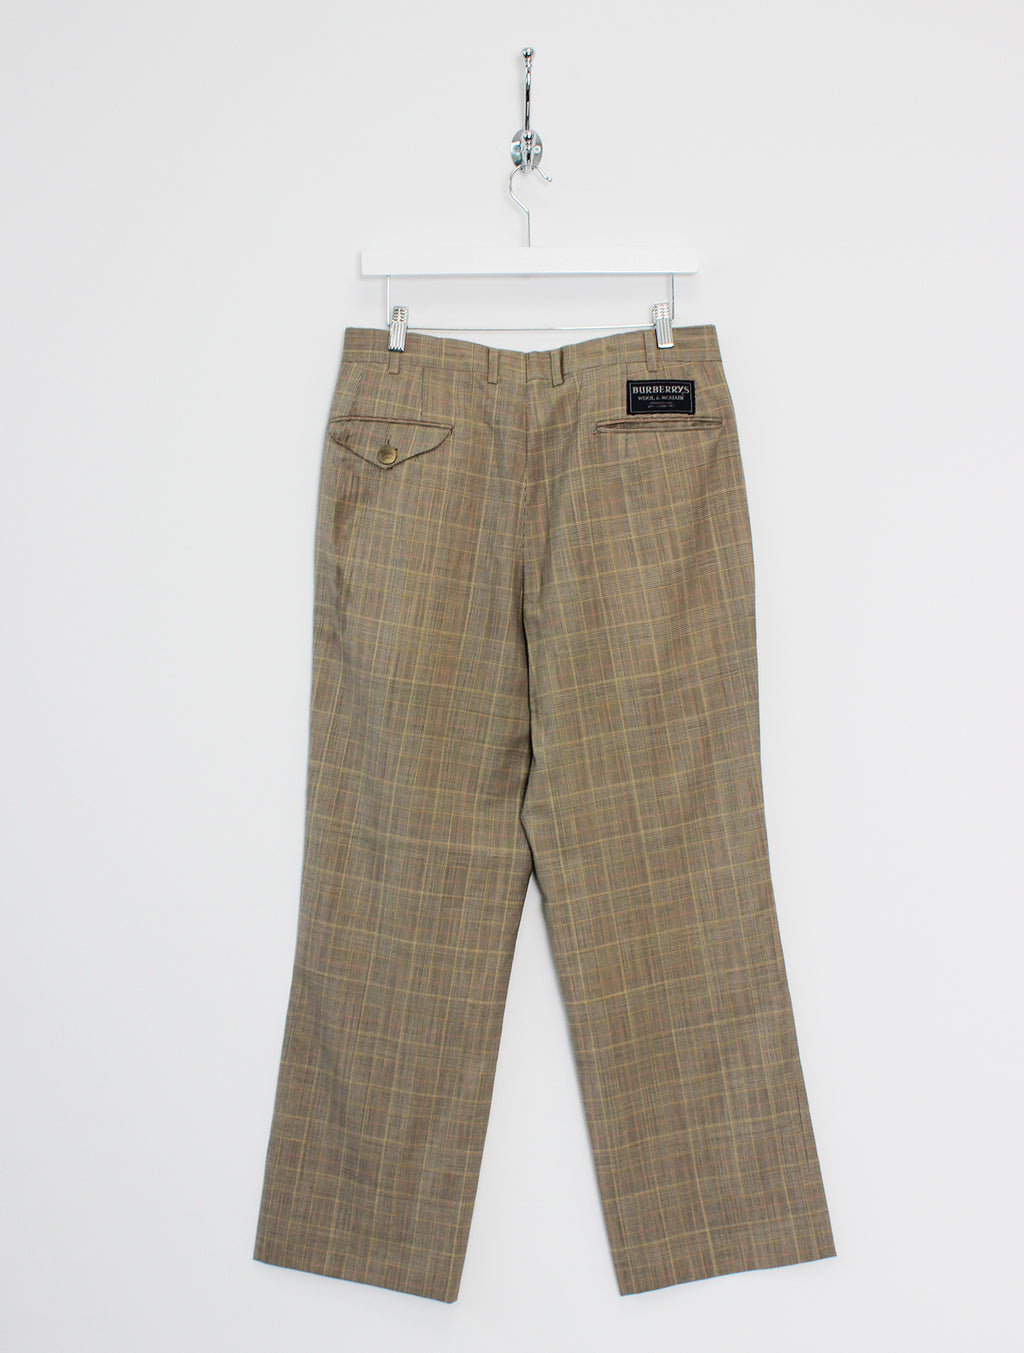 "Burberry Suit Trousers (32"")"